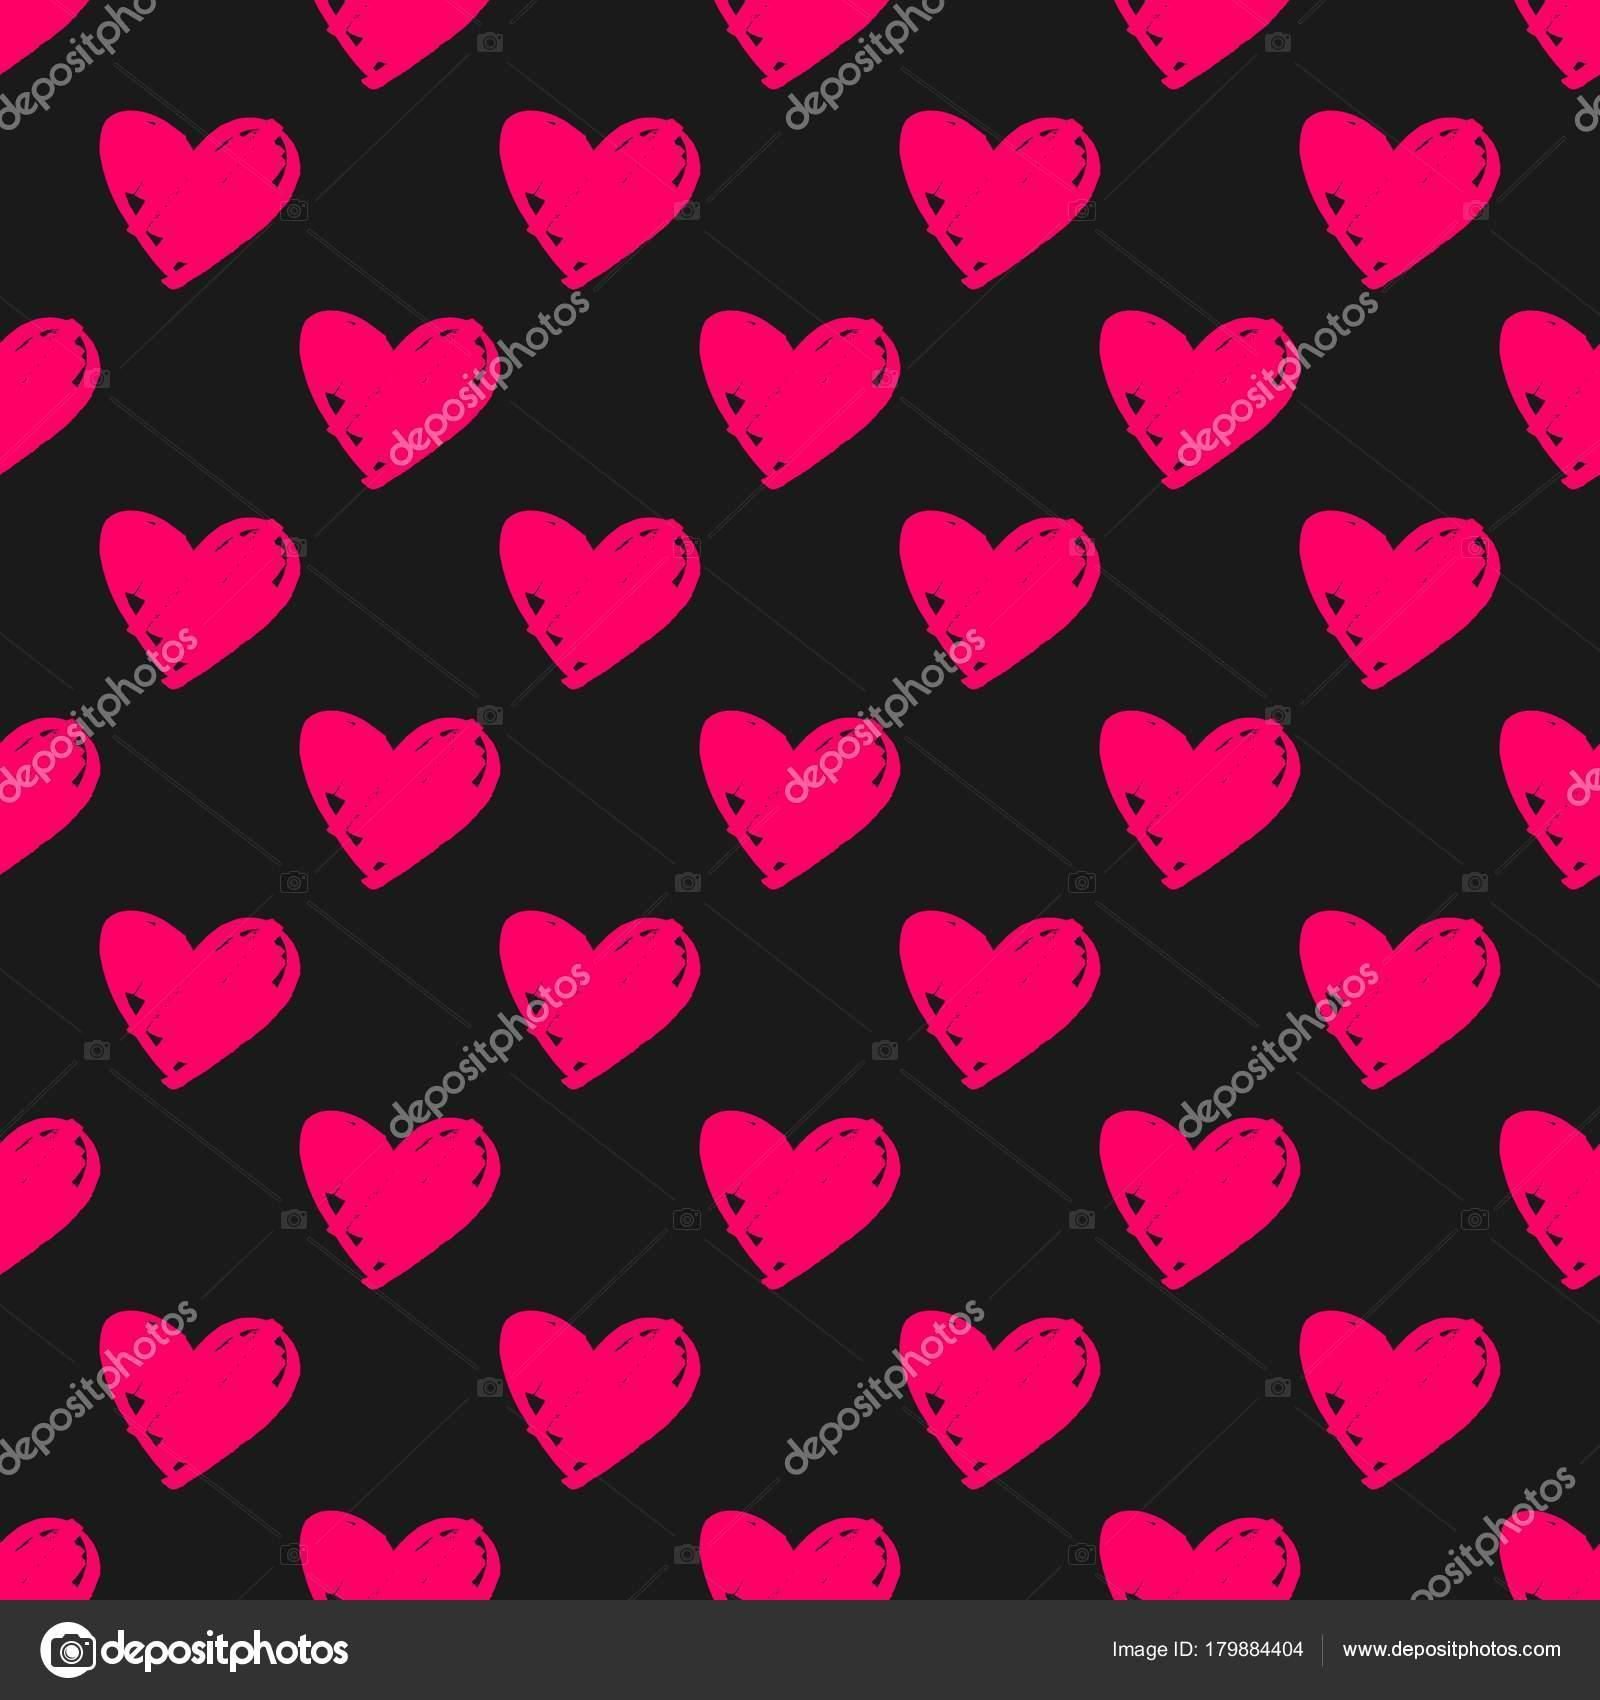 Tile Vector Pattern Pink Hearts Black Background Seamless Decoration Wallpaper Stock